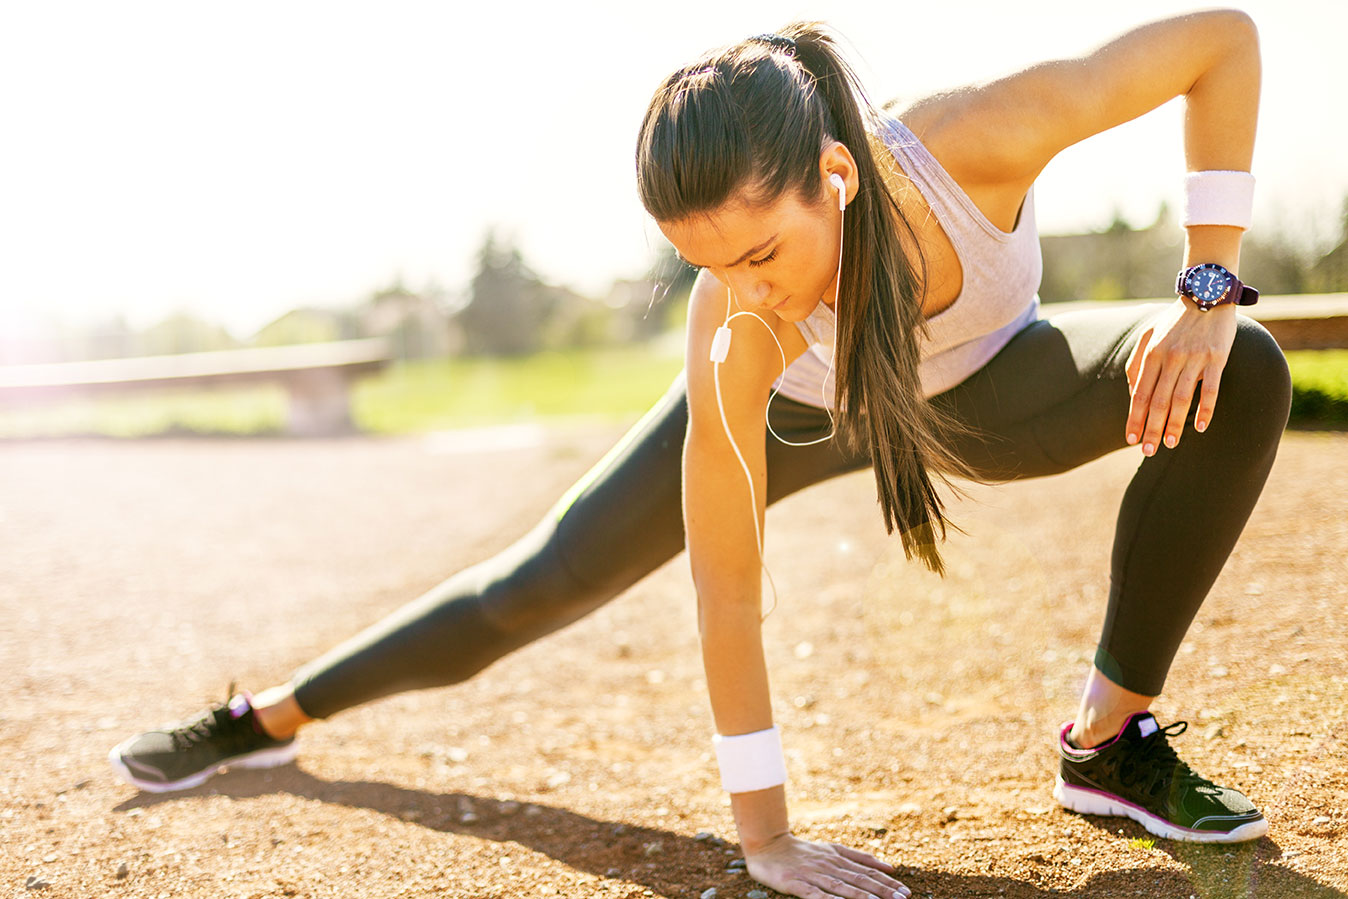 10 Big Running Mistakes to Avoid and How to Fix Them